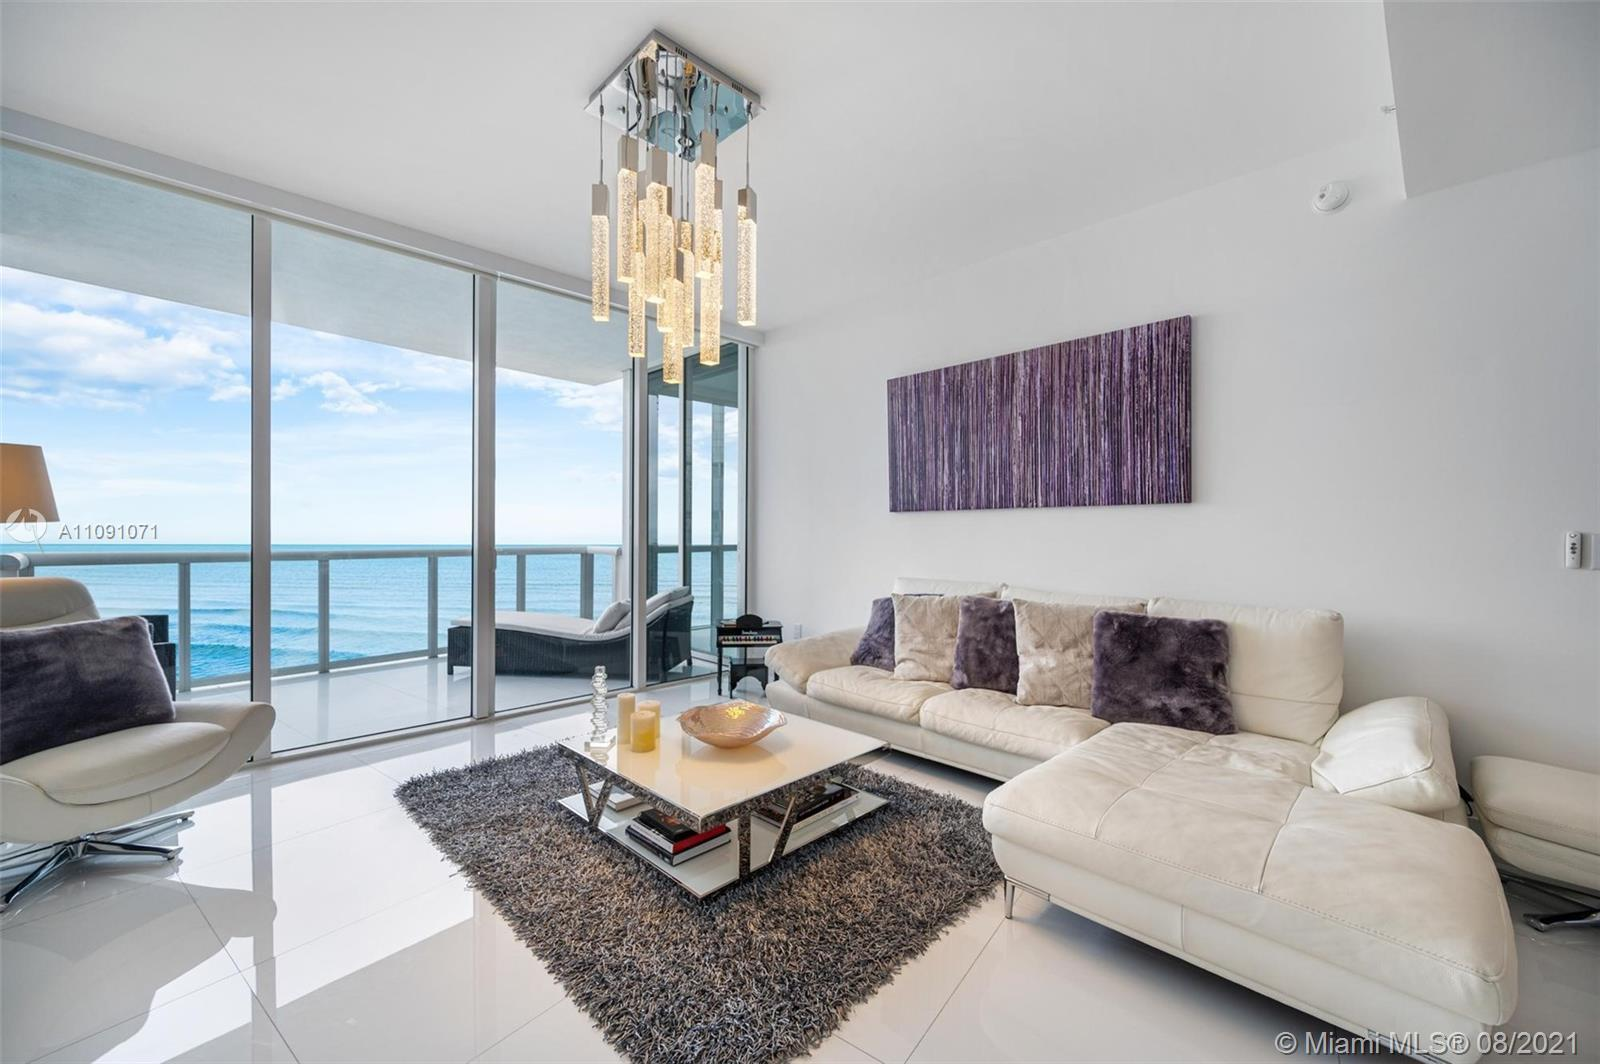 GORGEOUS APARTMENT WITH DIRECT UNOBSTRUCTED OCEAN VIEW AND PARTIAL CITY PANORAMA. FULLY UPGRADED AND